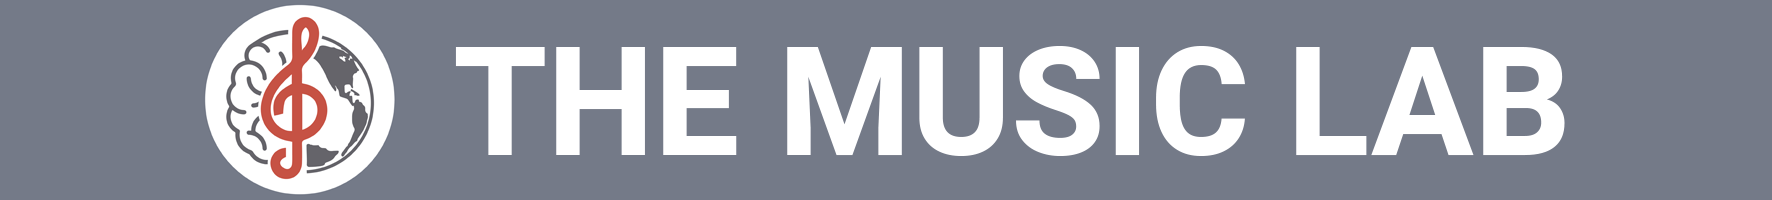 The Music Lab Logo